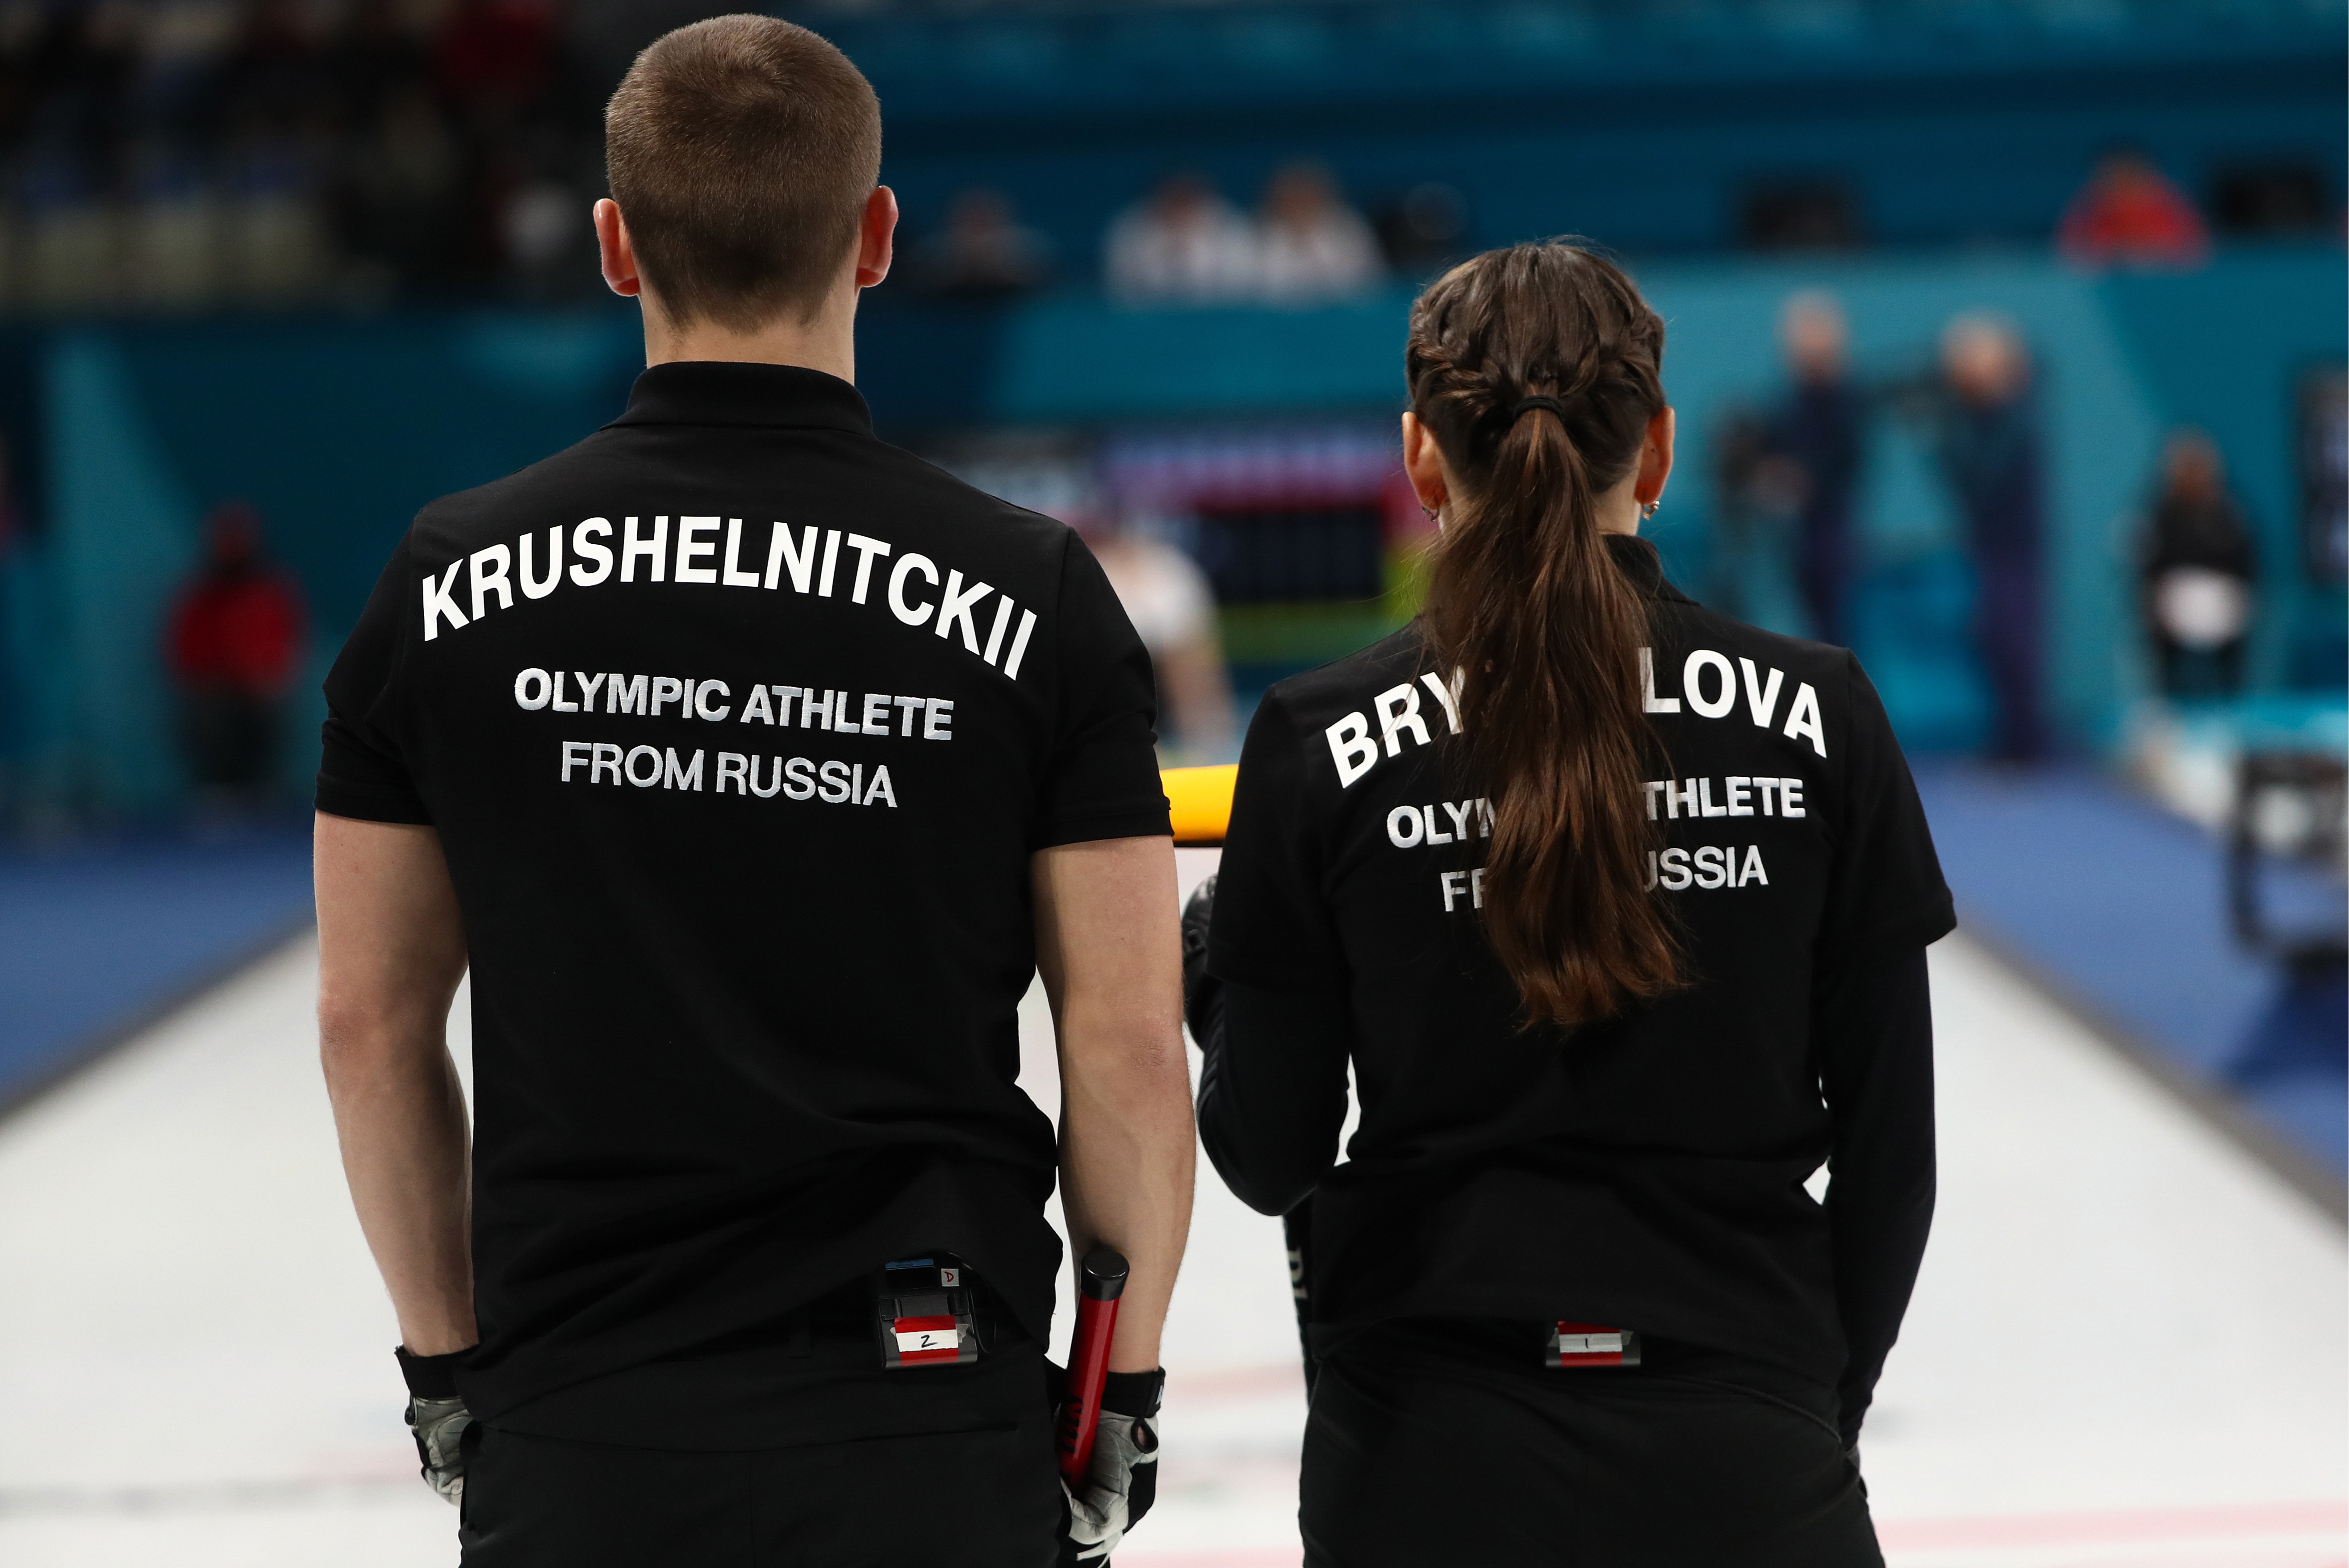 Olympic Athletes from Russia Anastasia Bryzgalova (R) and Alexander Krushelnitsky seen during Session 3 of the Mixed Doubles Round Robin curling competition against Finland at the 2018 Winter Olympic Games at Gangneung Curling Centre.